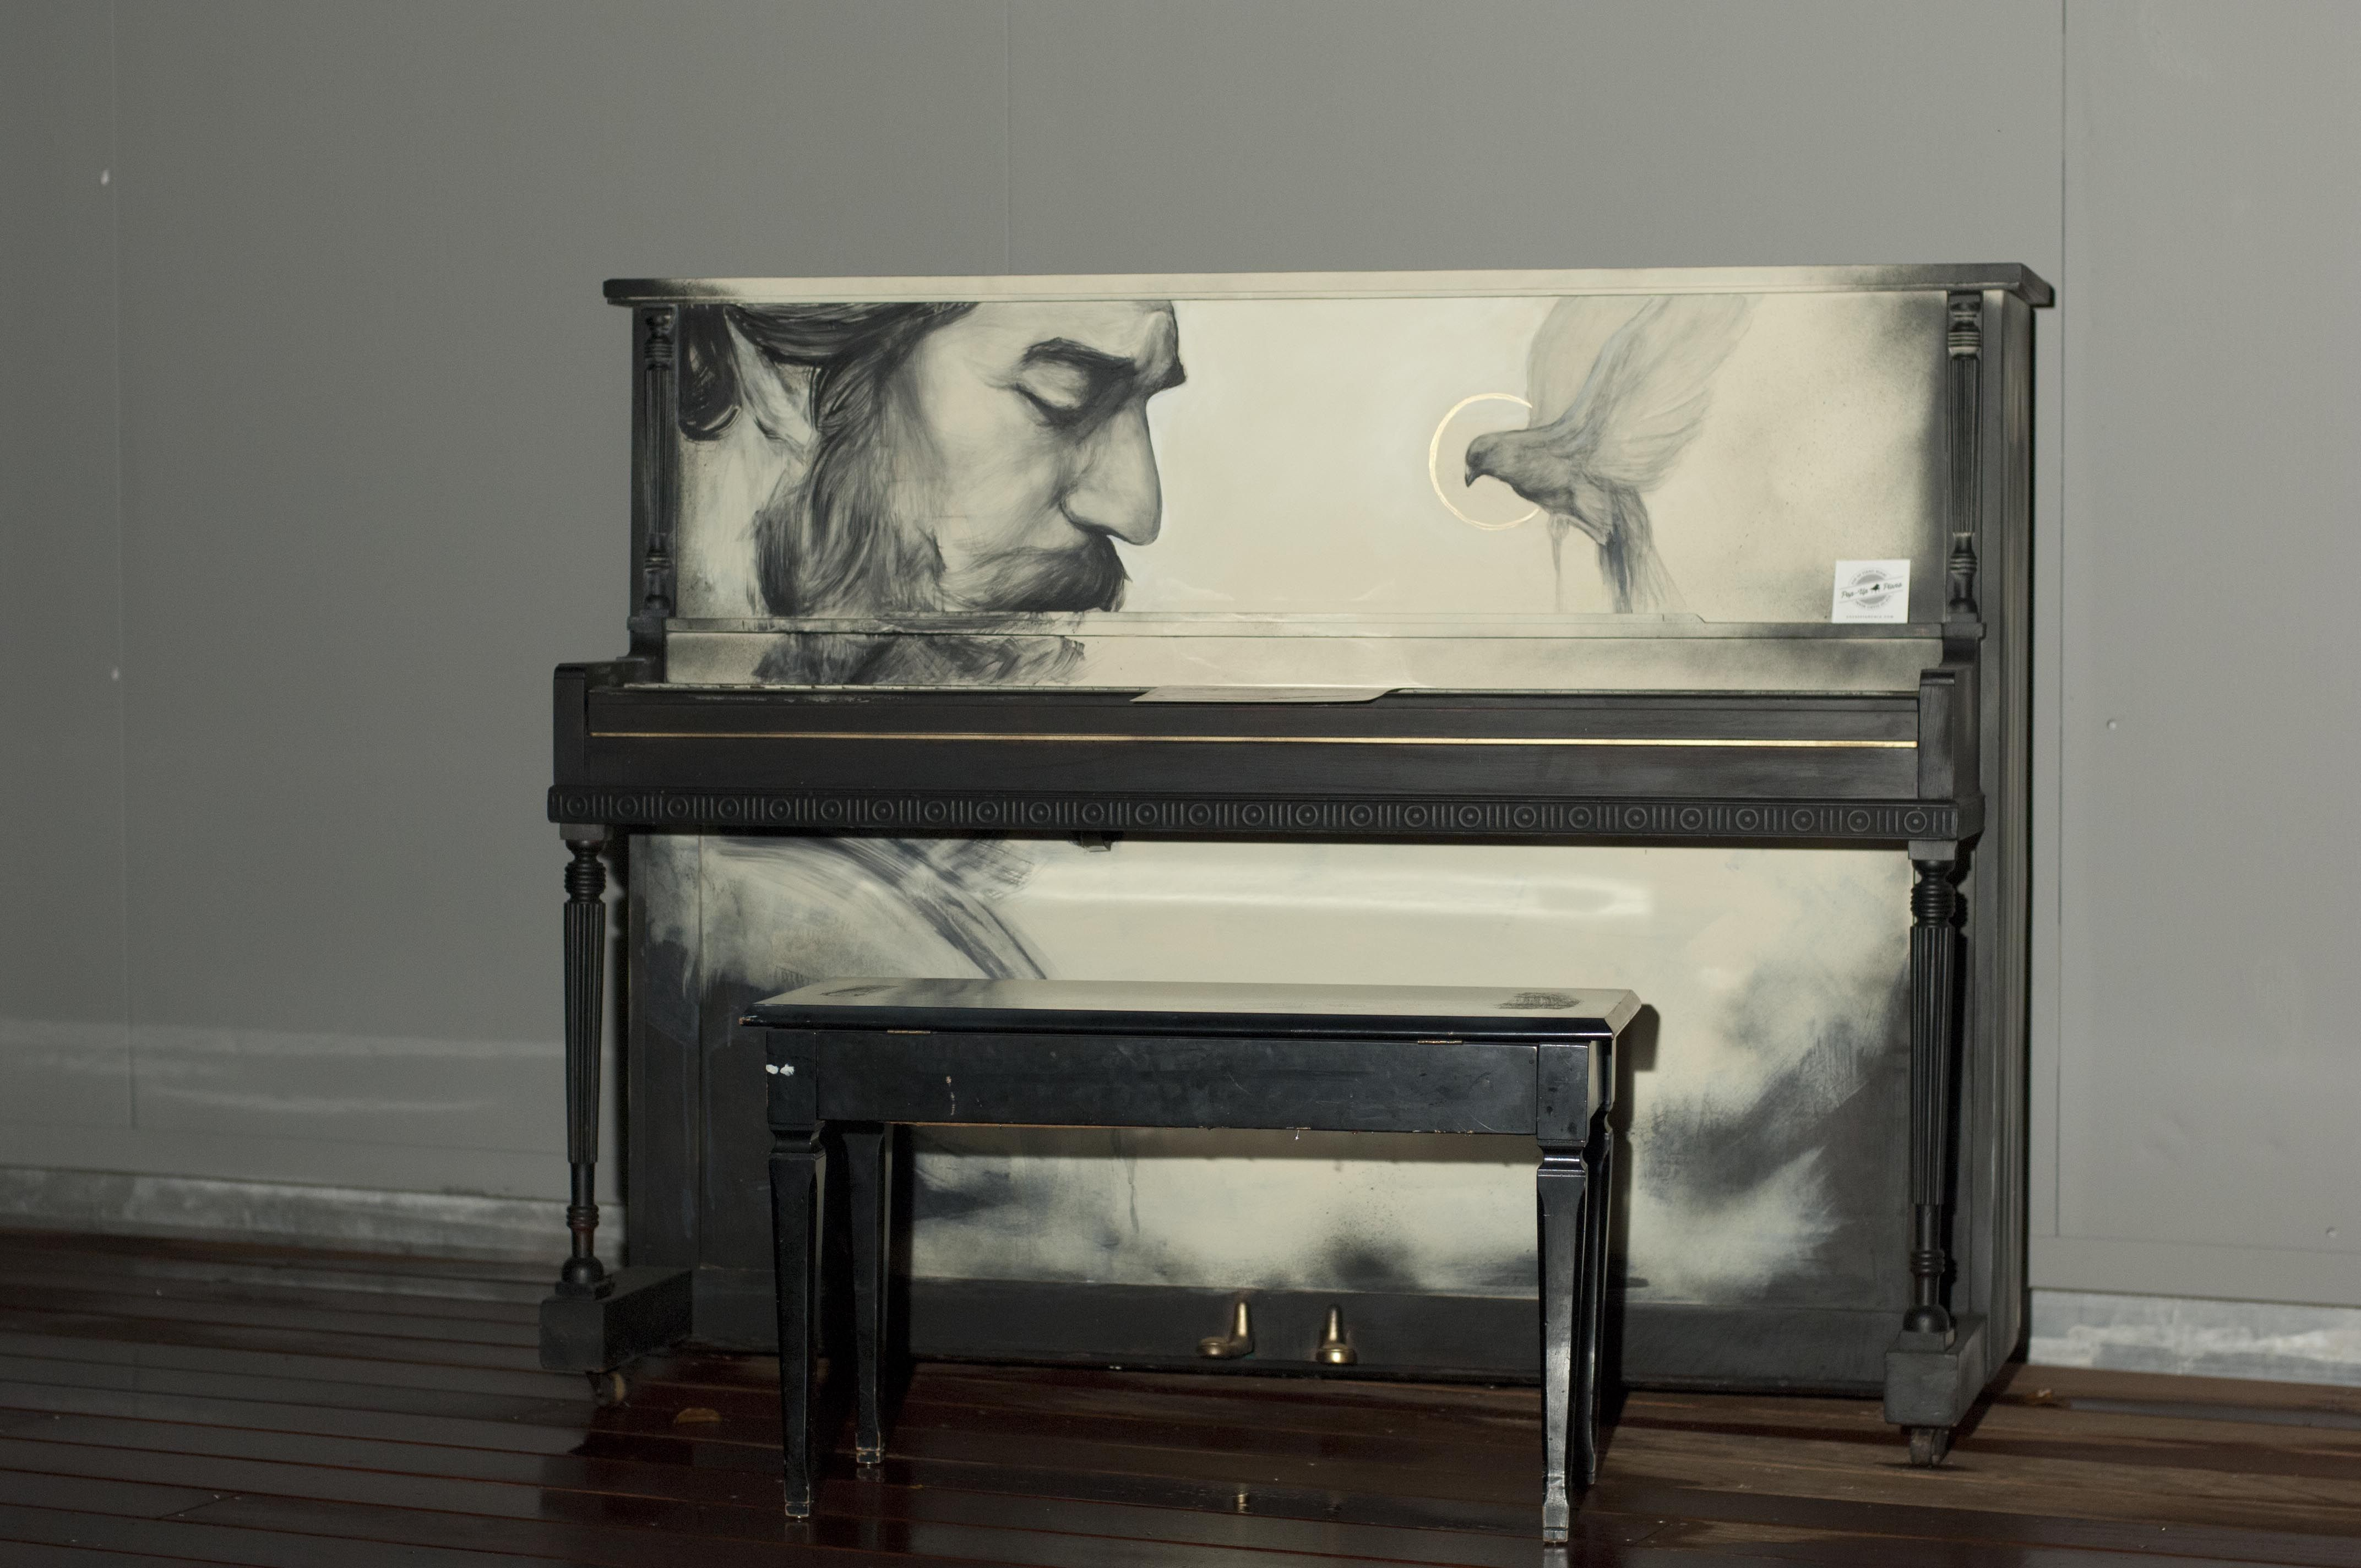 Piano by Evoca1 at Pop Up Miami Concert